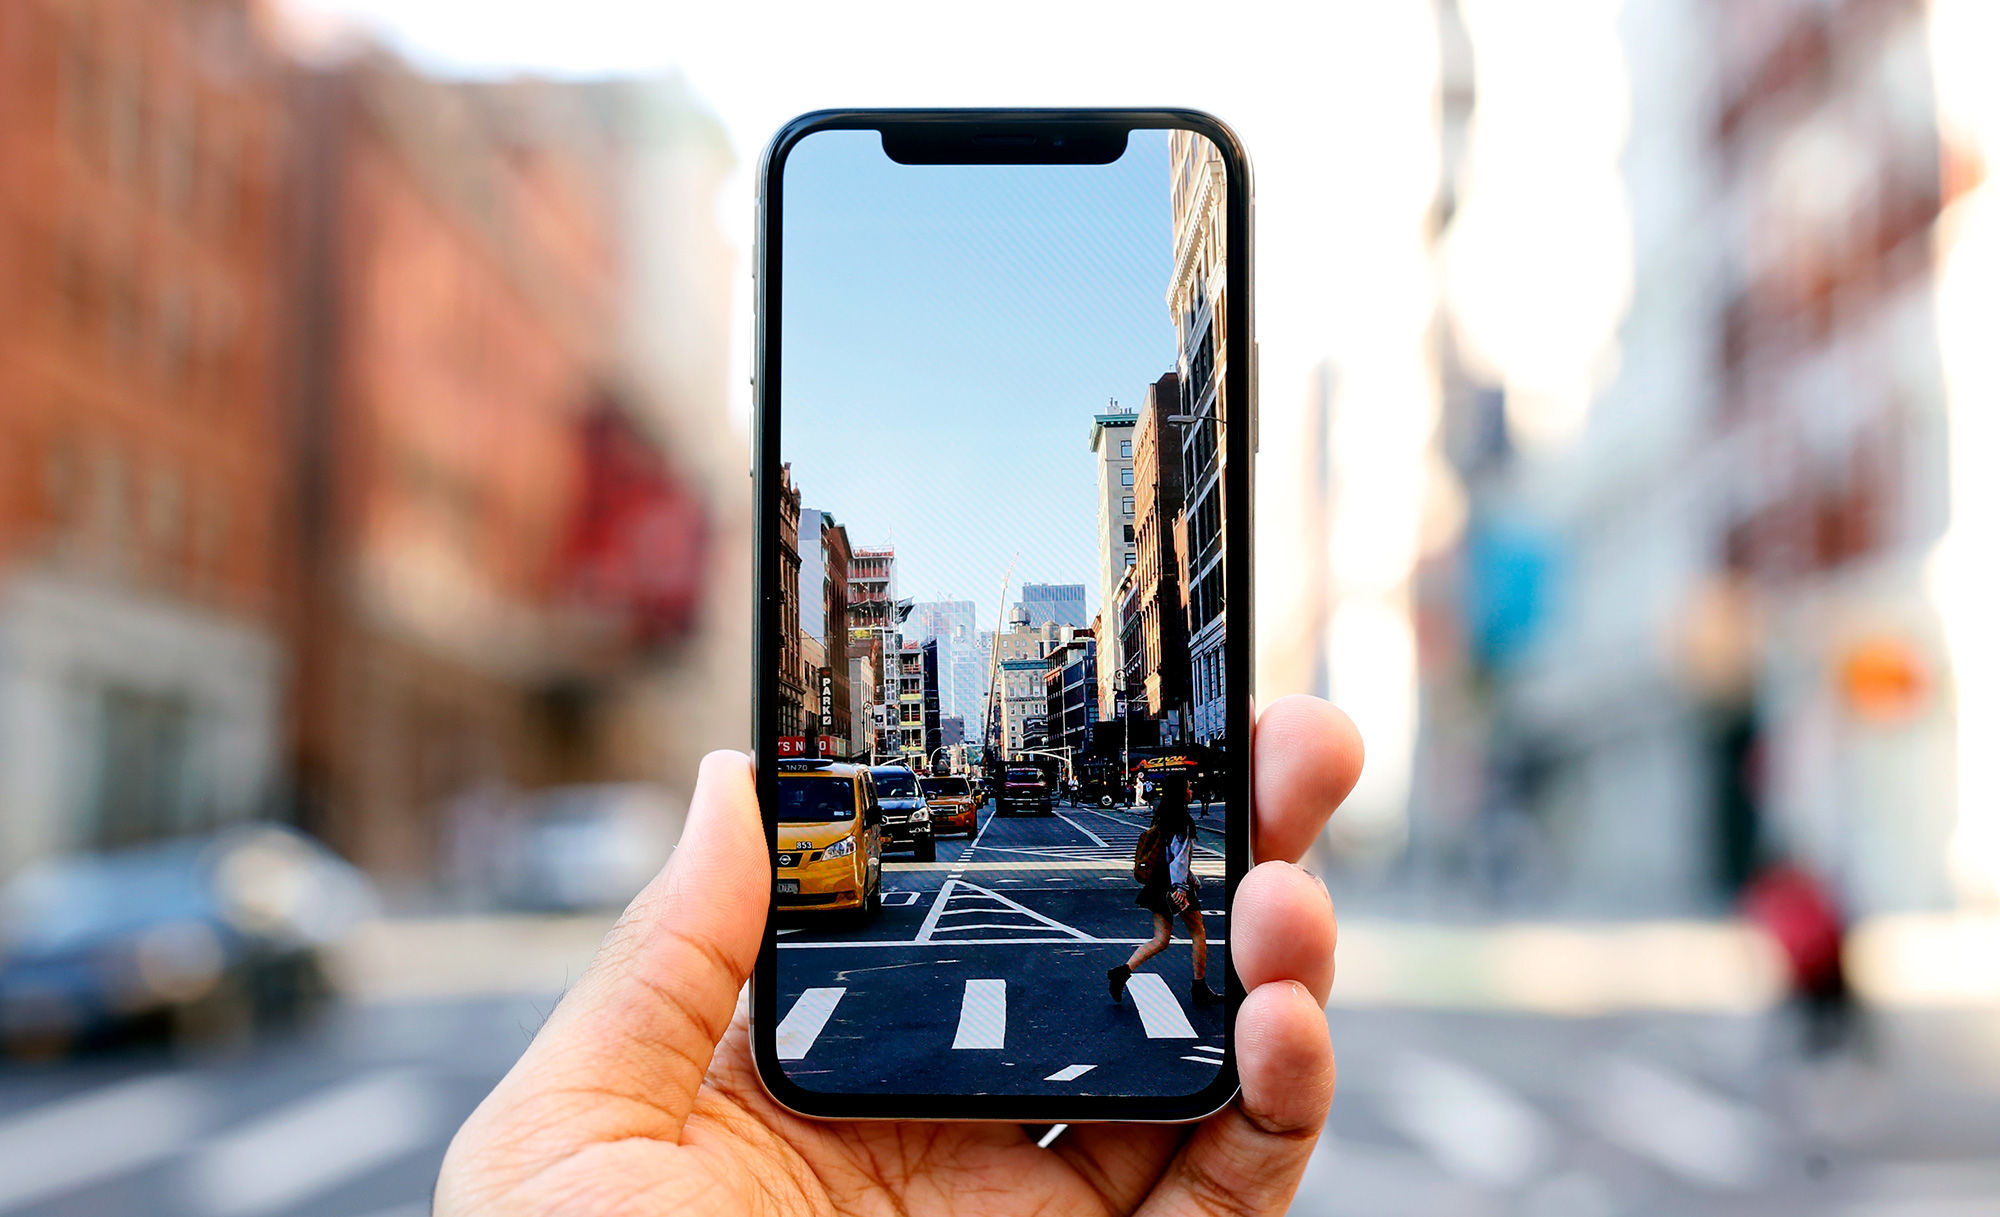 A Year On, The IPhone X Looks Ordinary